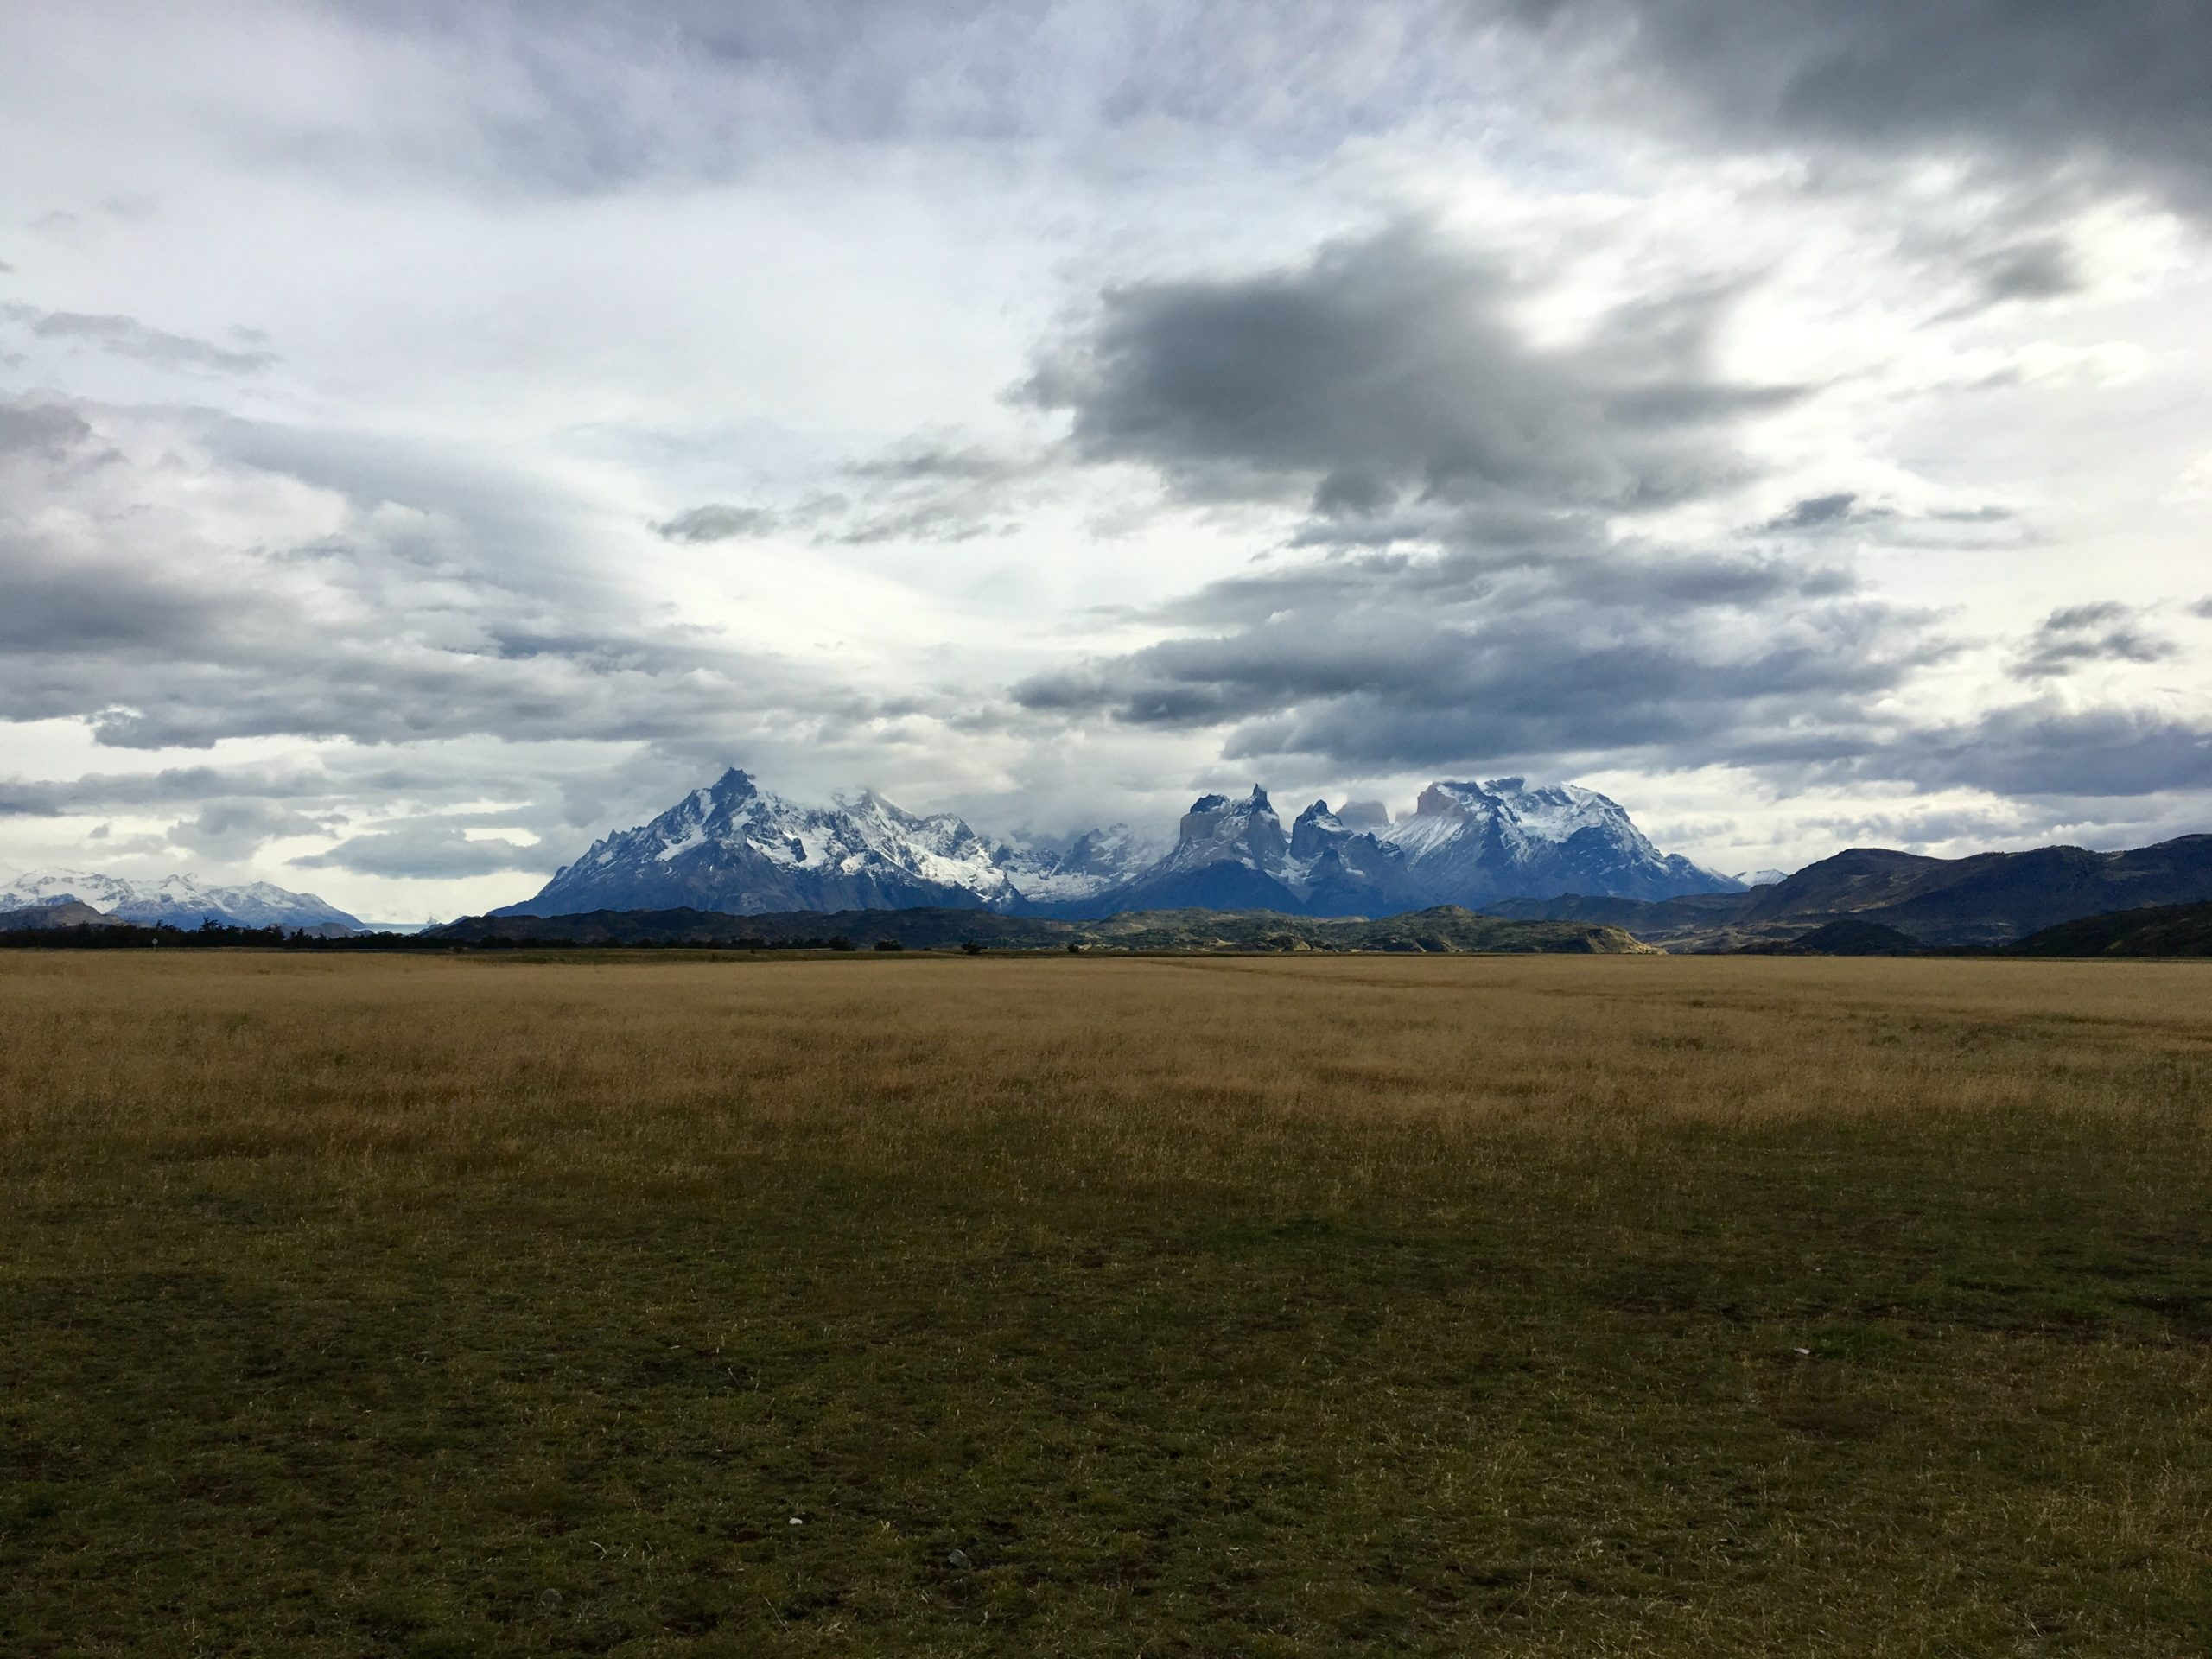 cloudy skies over Torres del Paine and an open field on this breathtaking Chile trip